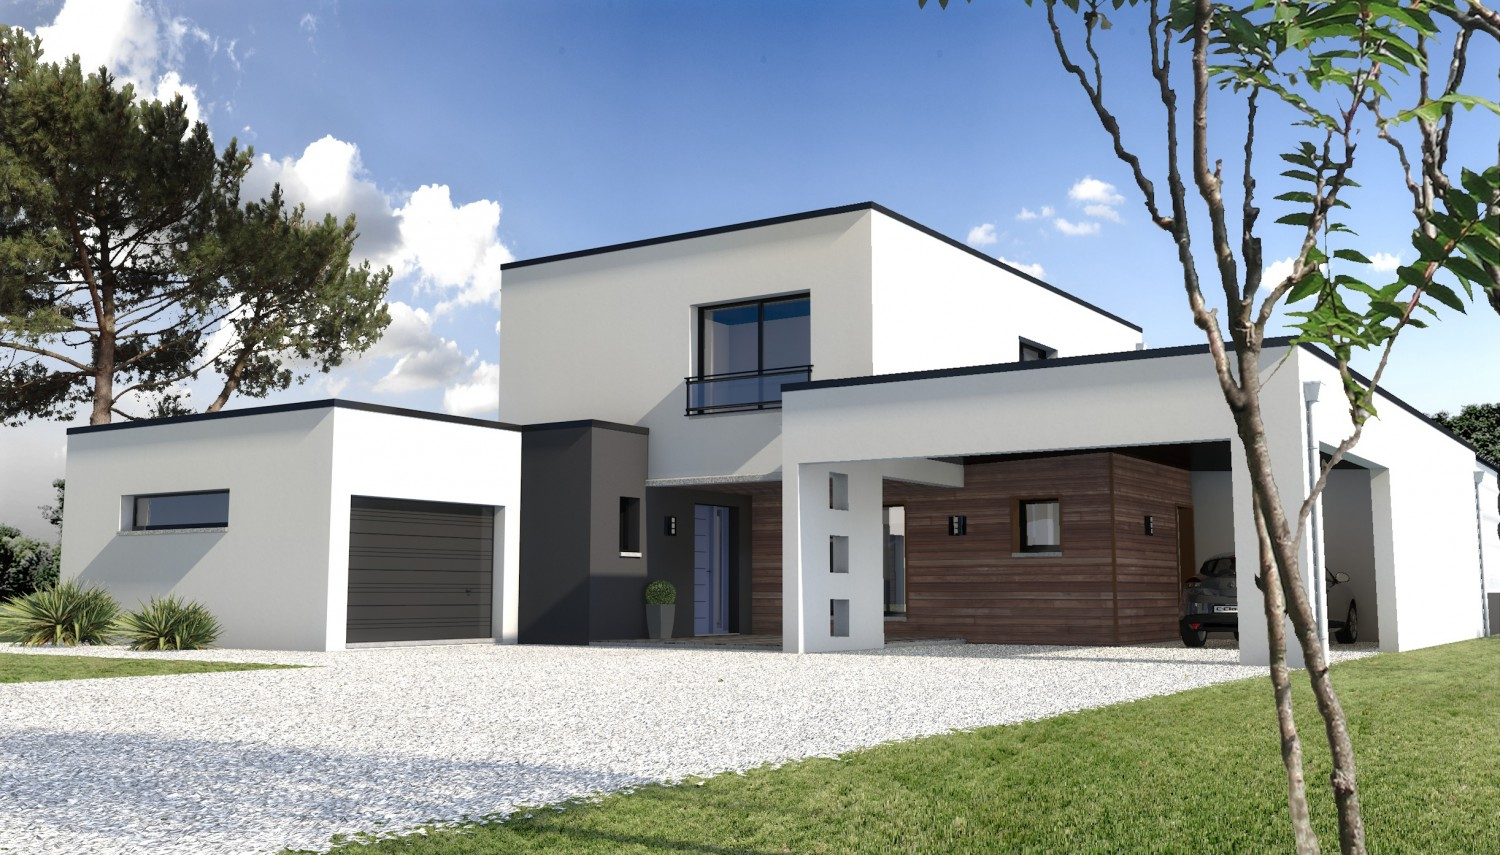 Exceptionnel Maison Moderne Construction